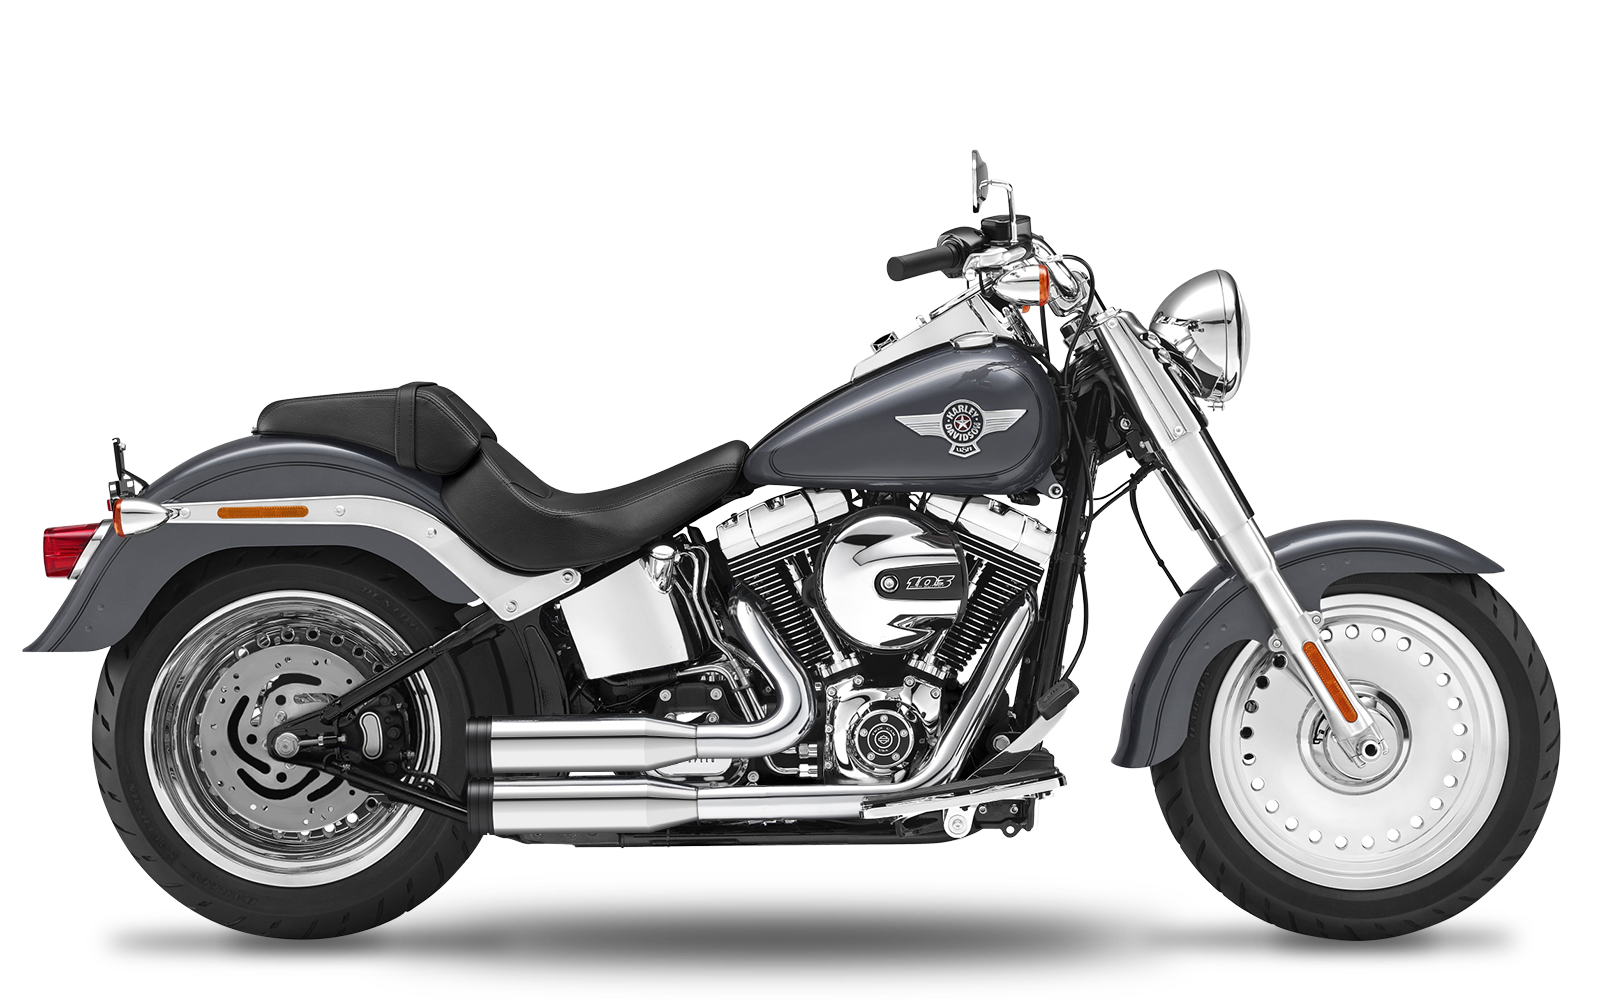 Softail - Deluxe - TC103 - 2017 - Complete systems adjustable